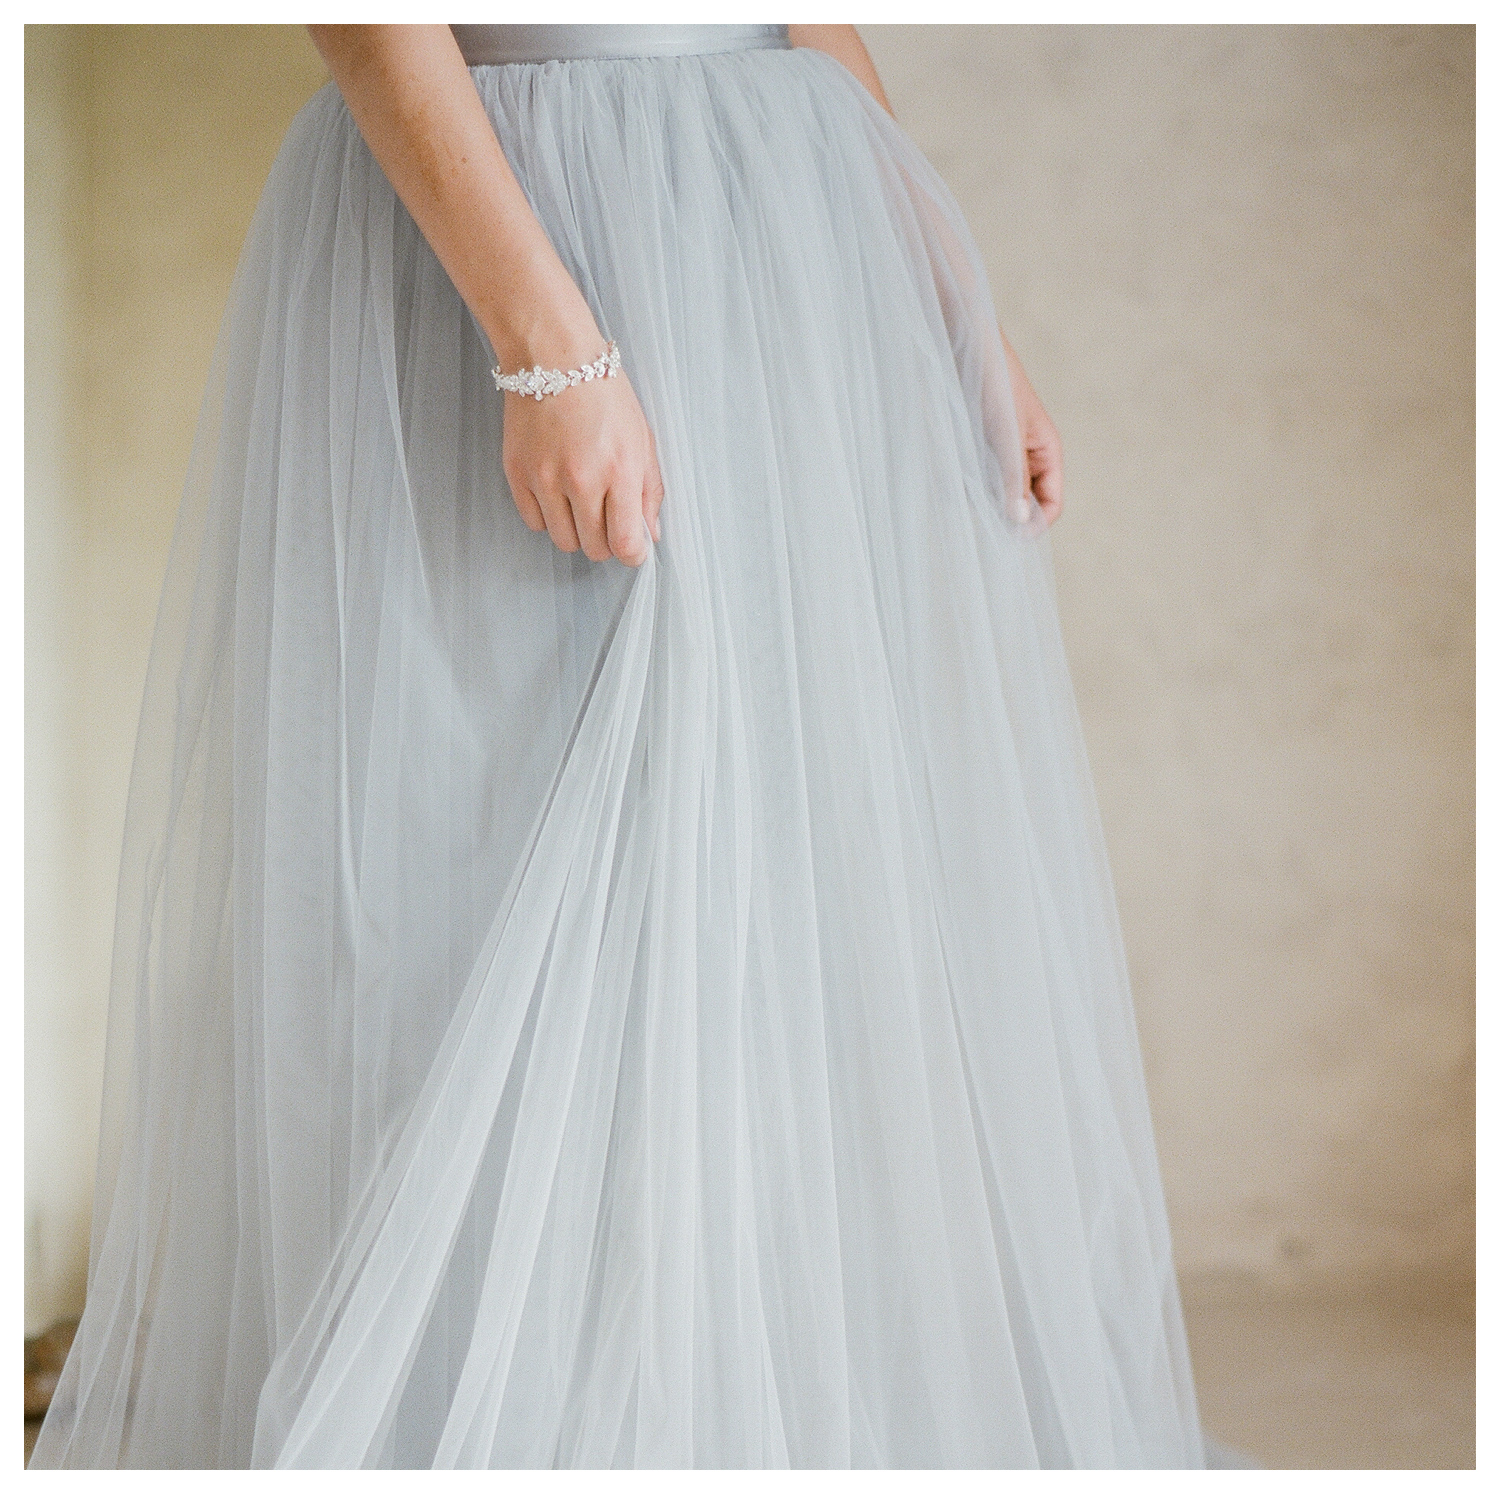 Bel-Aire-Bridal-Serenity--KT-Merry-2